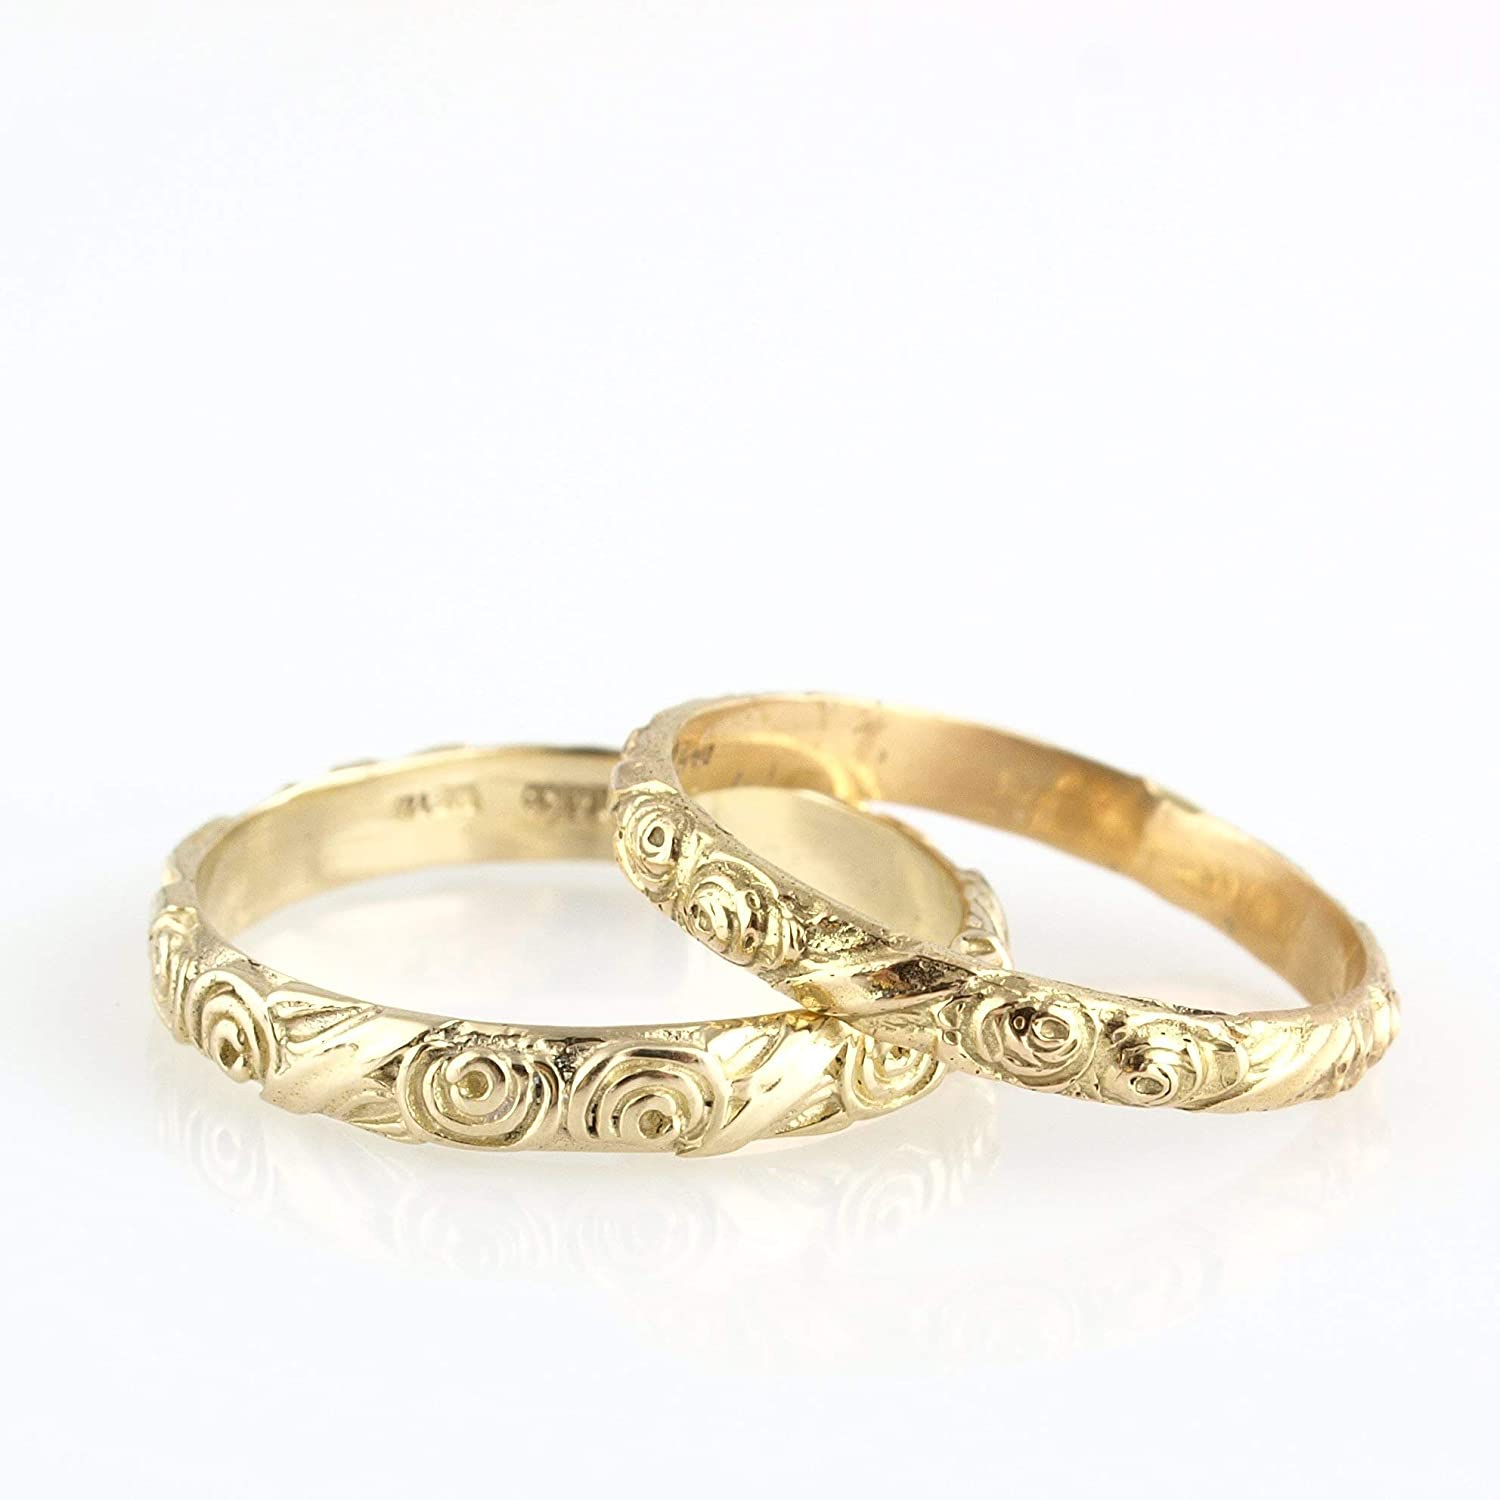 Handmade Vintage Style Floral Engraved 14k Yellow Gold Wedding Band Unique Designer Stackable Ring SIZE 5